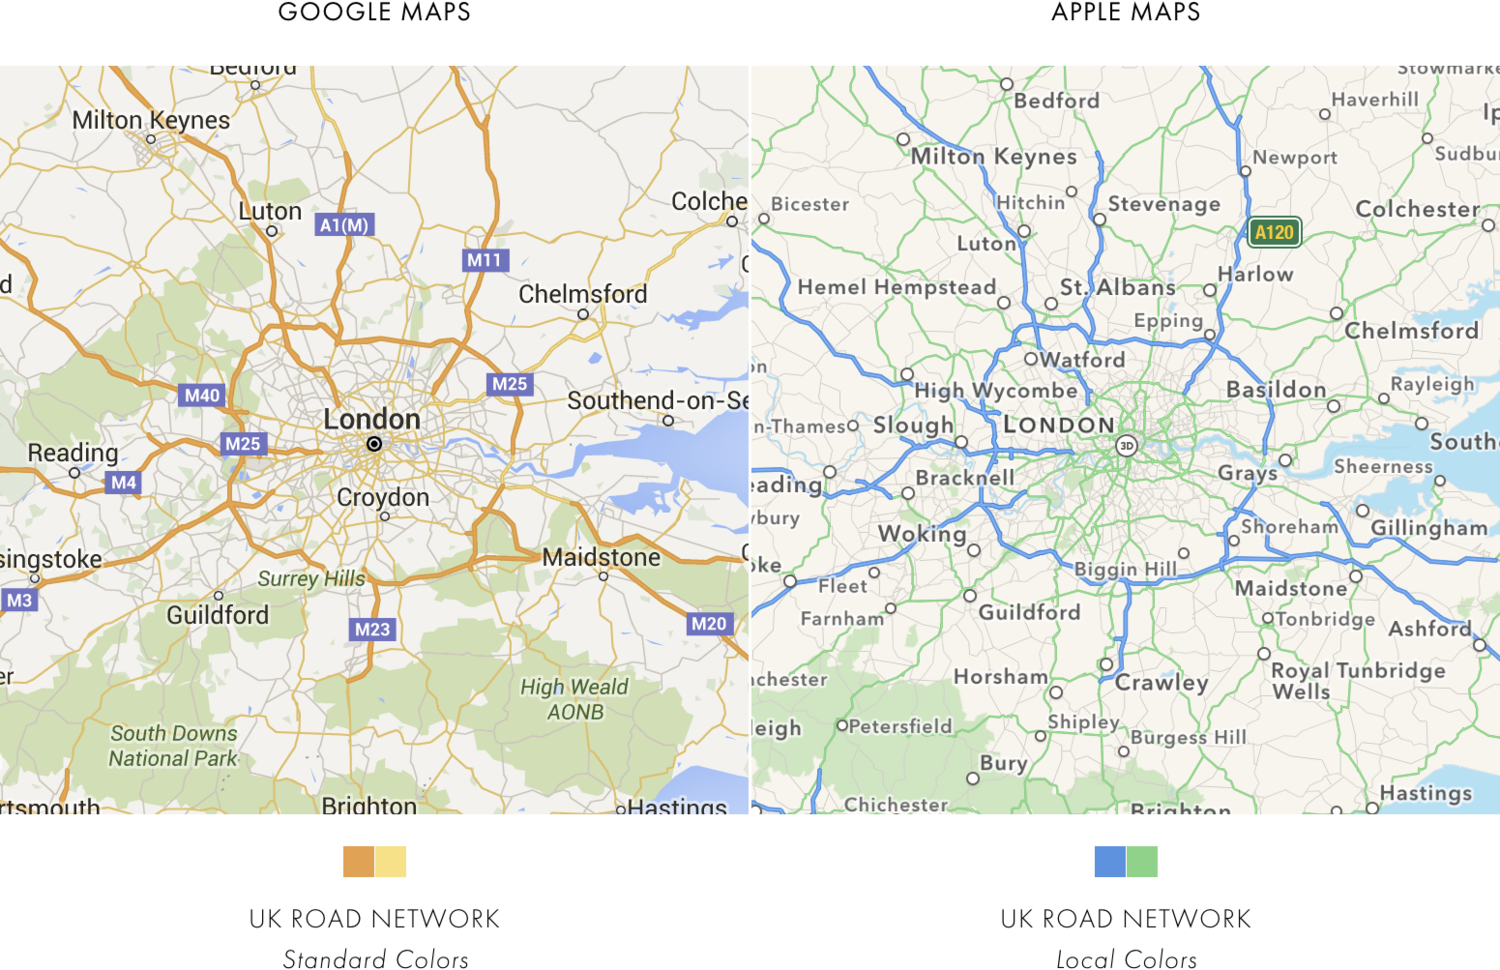 apple-map-and-google-map-who-is-the-best_03